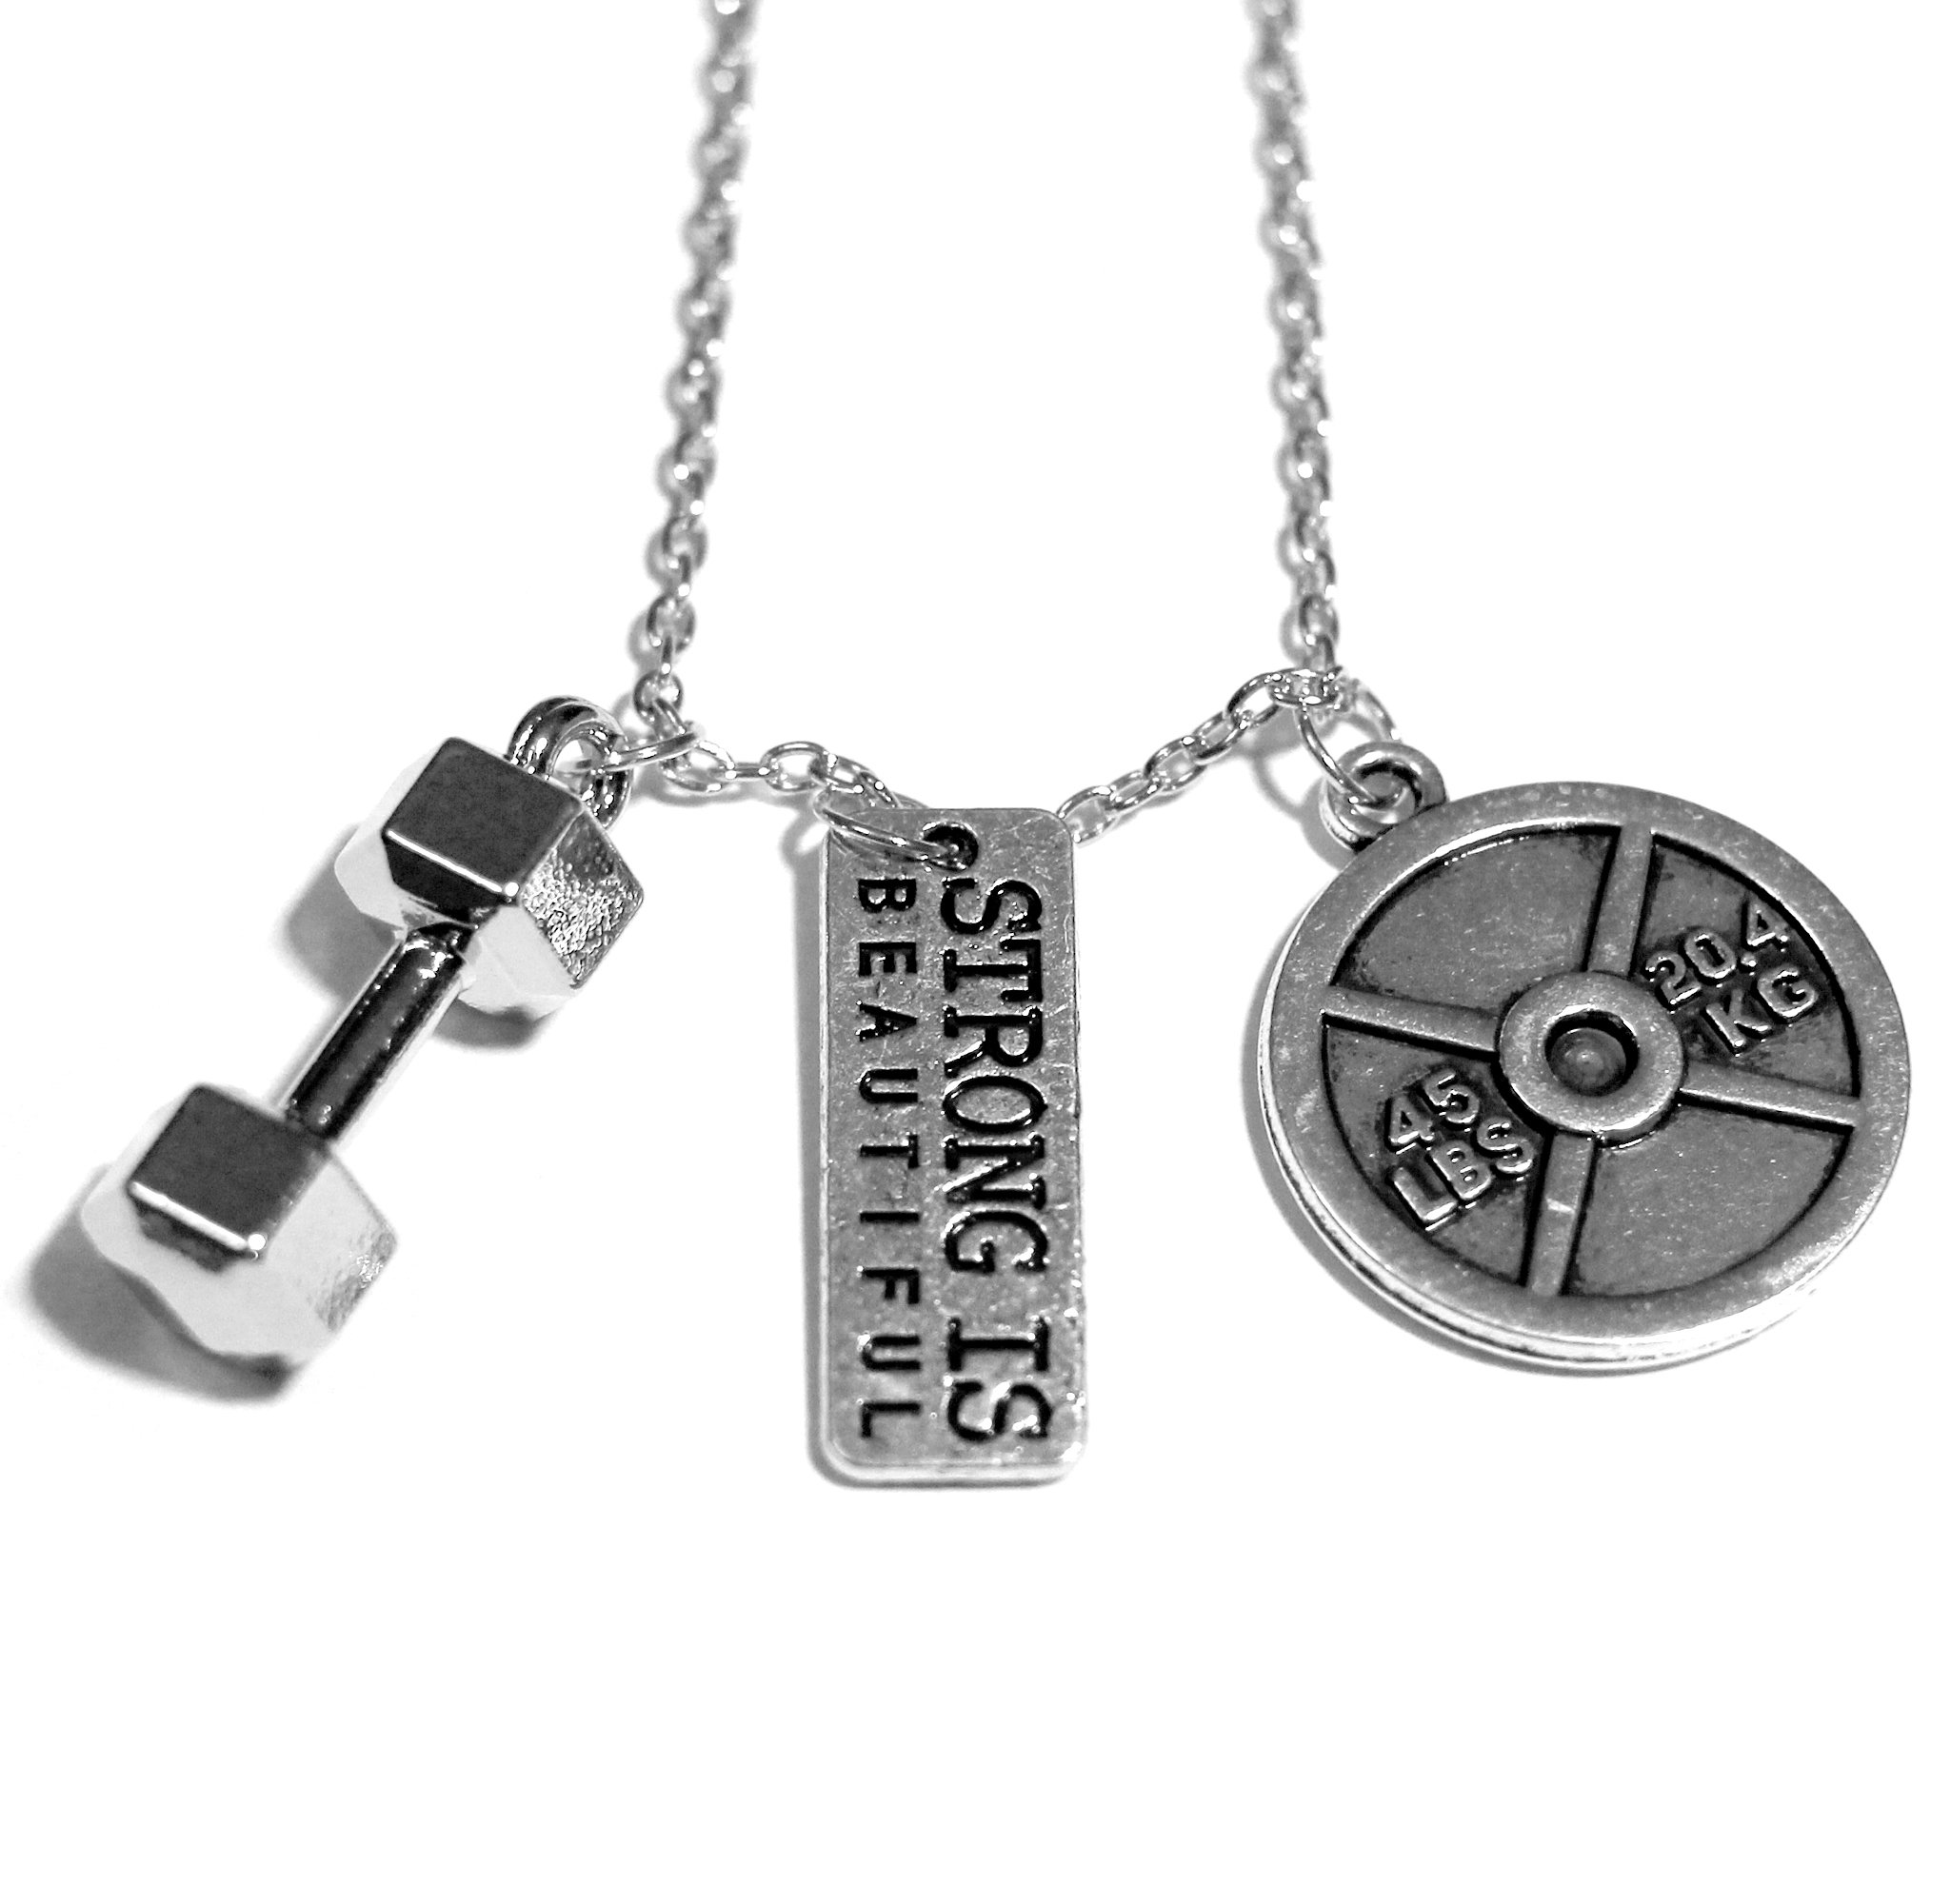 Santa Monica Charm Co. The Original Strong is Beautiful Necklace with Dumbbell and 45lb Plate Pendants